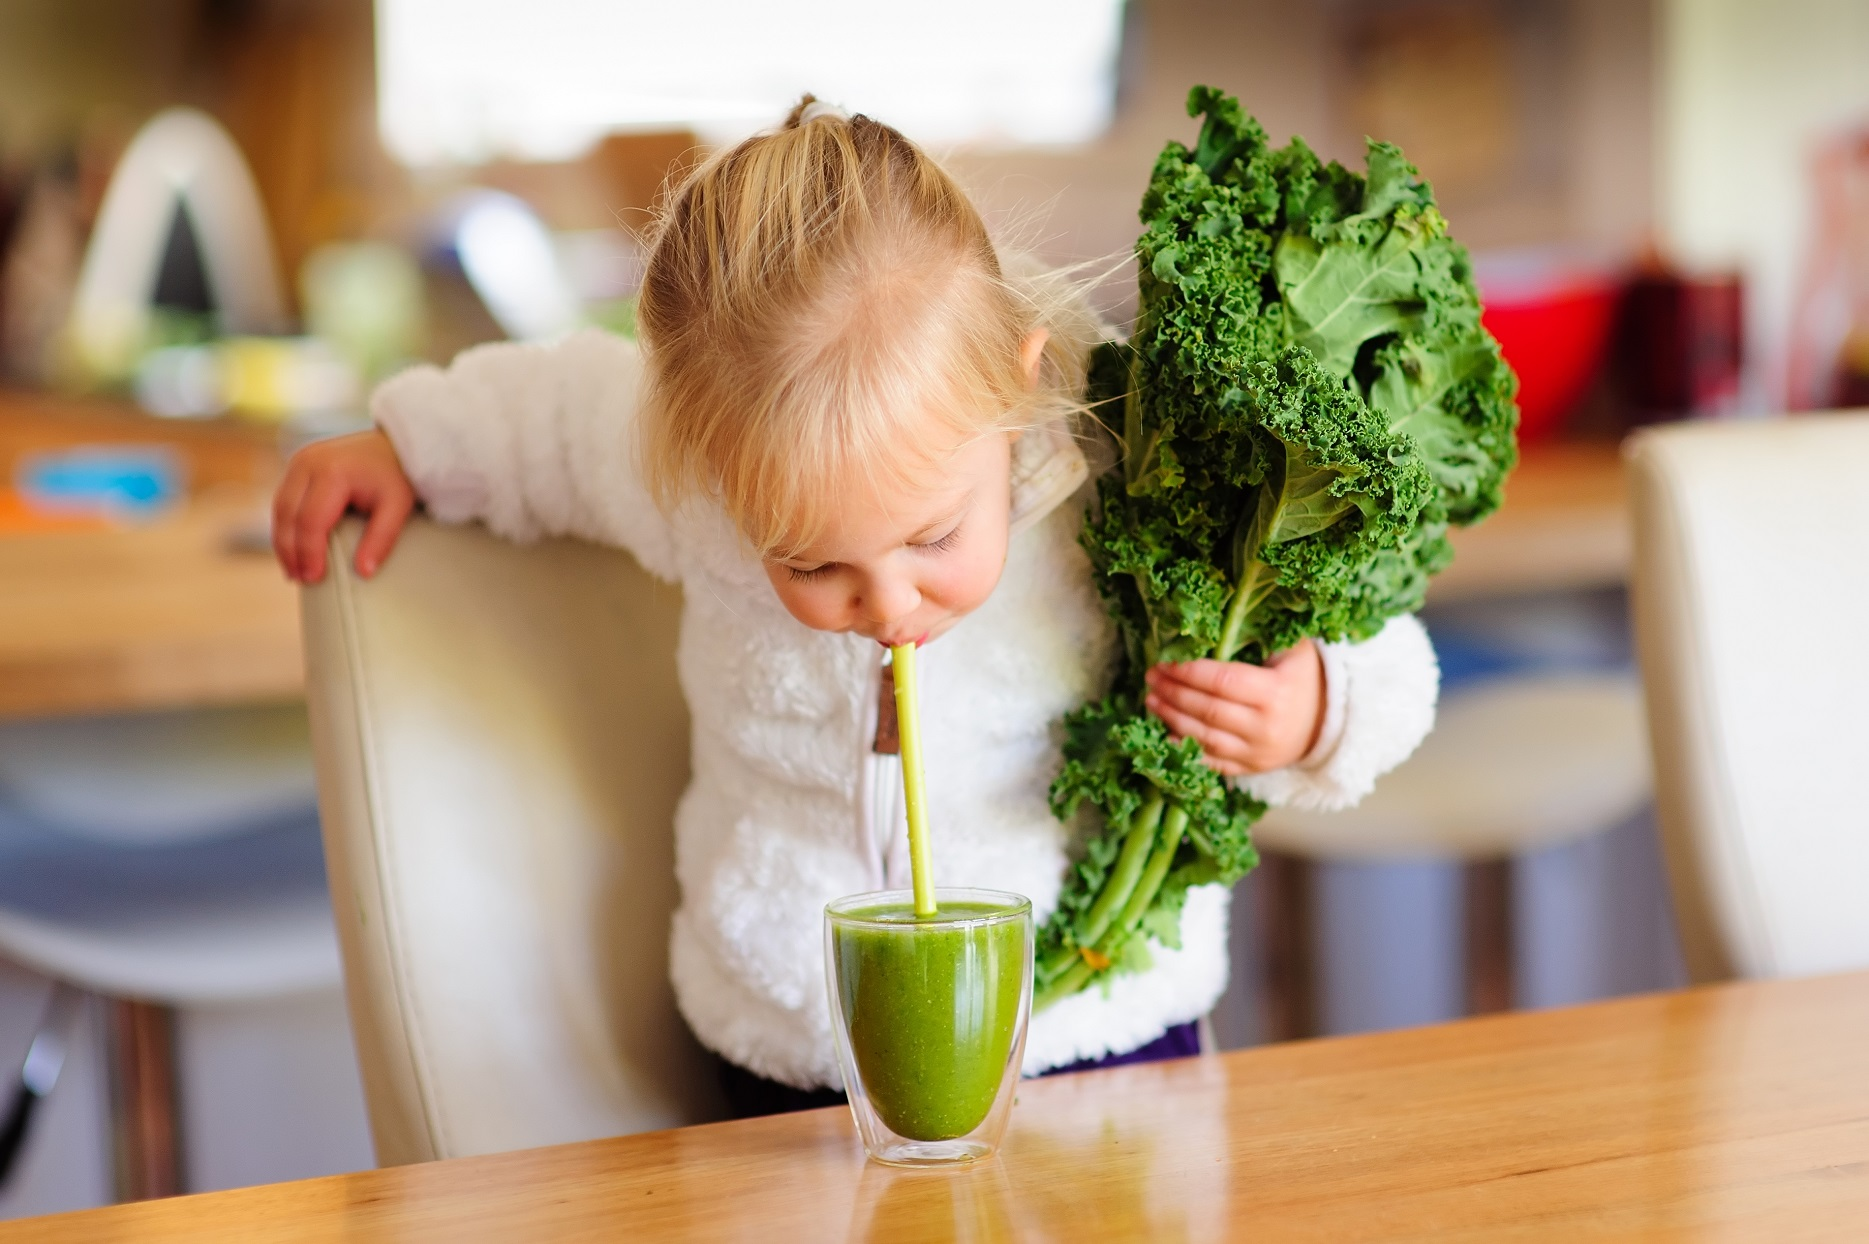 Little Girl Holding Kale Drinking Green Smoothie With Straw